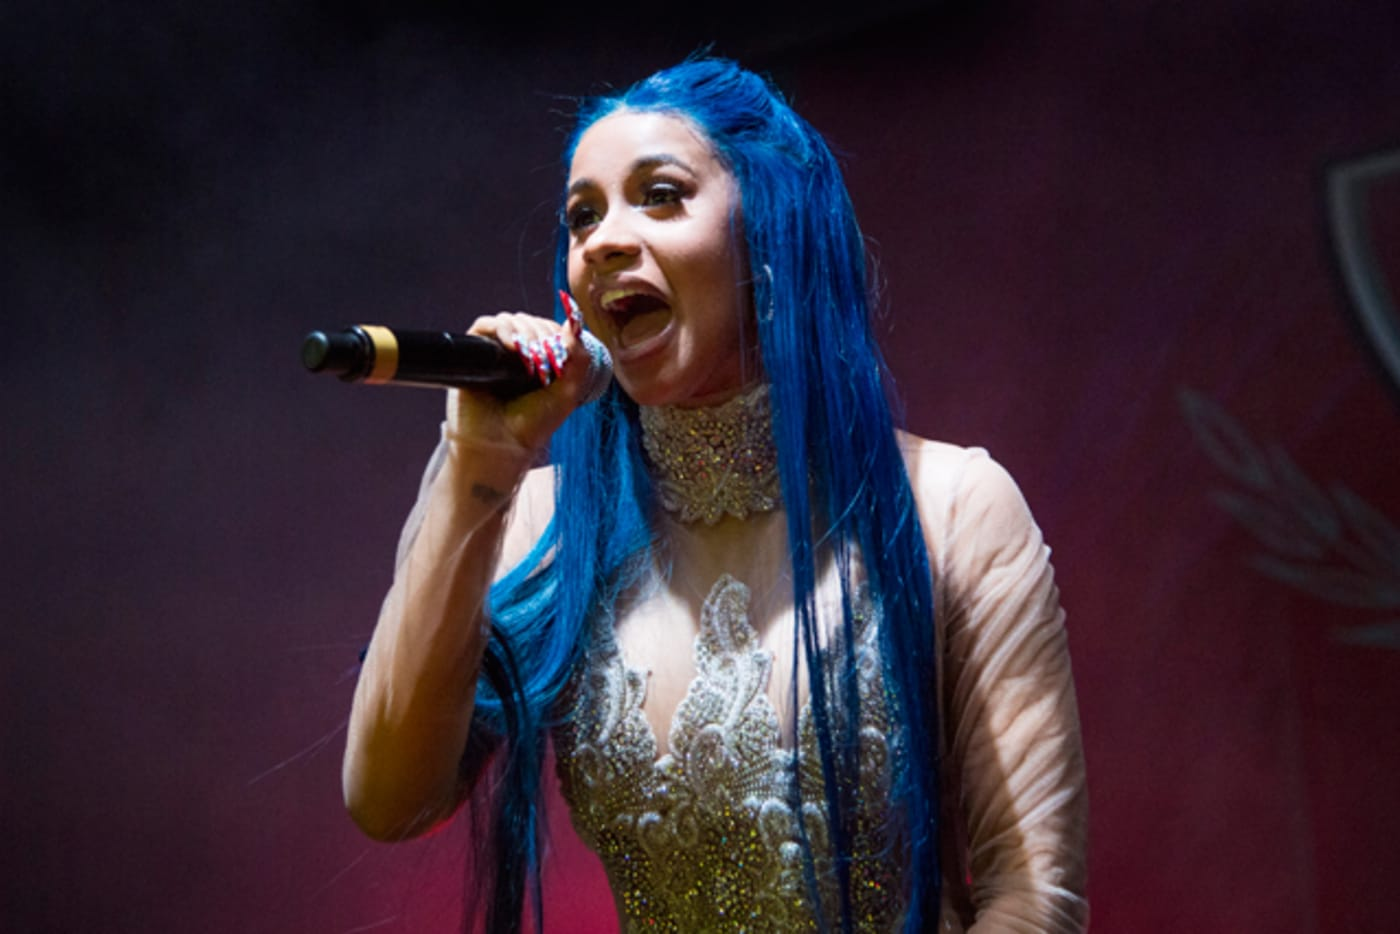 Cardi B performs at The Joy Theater